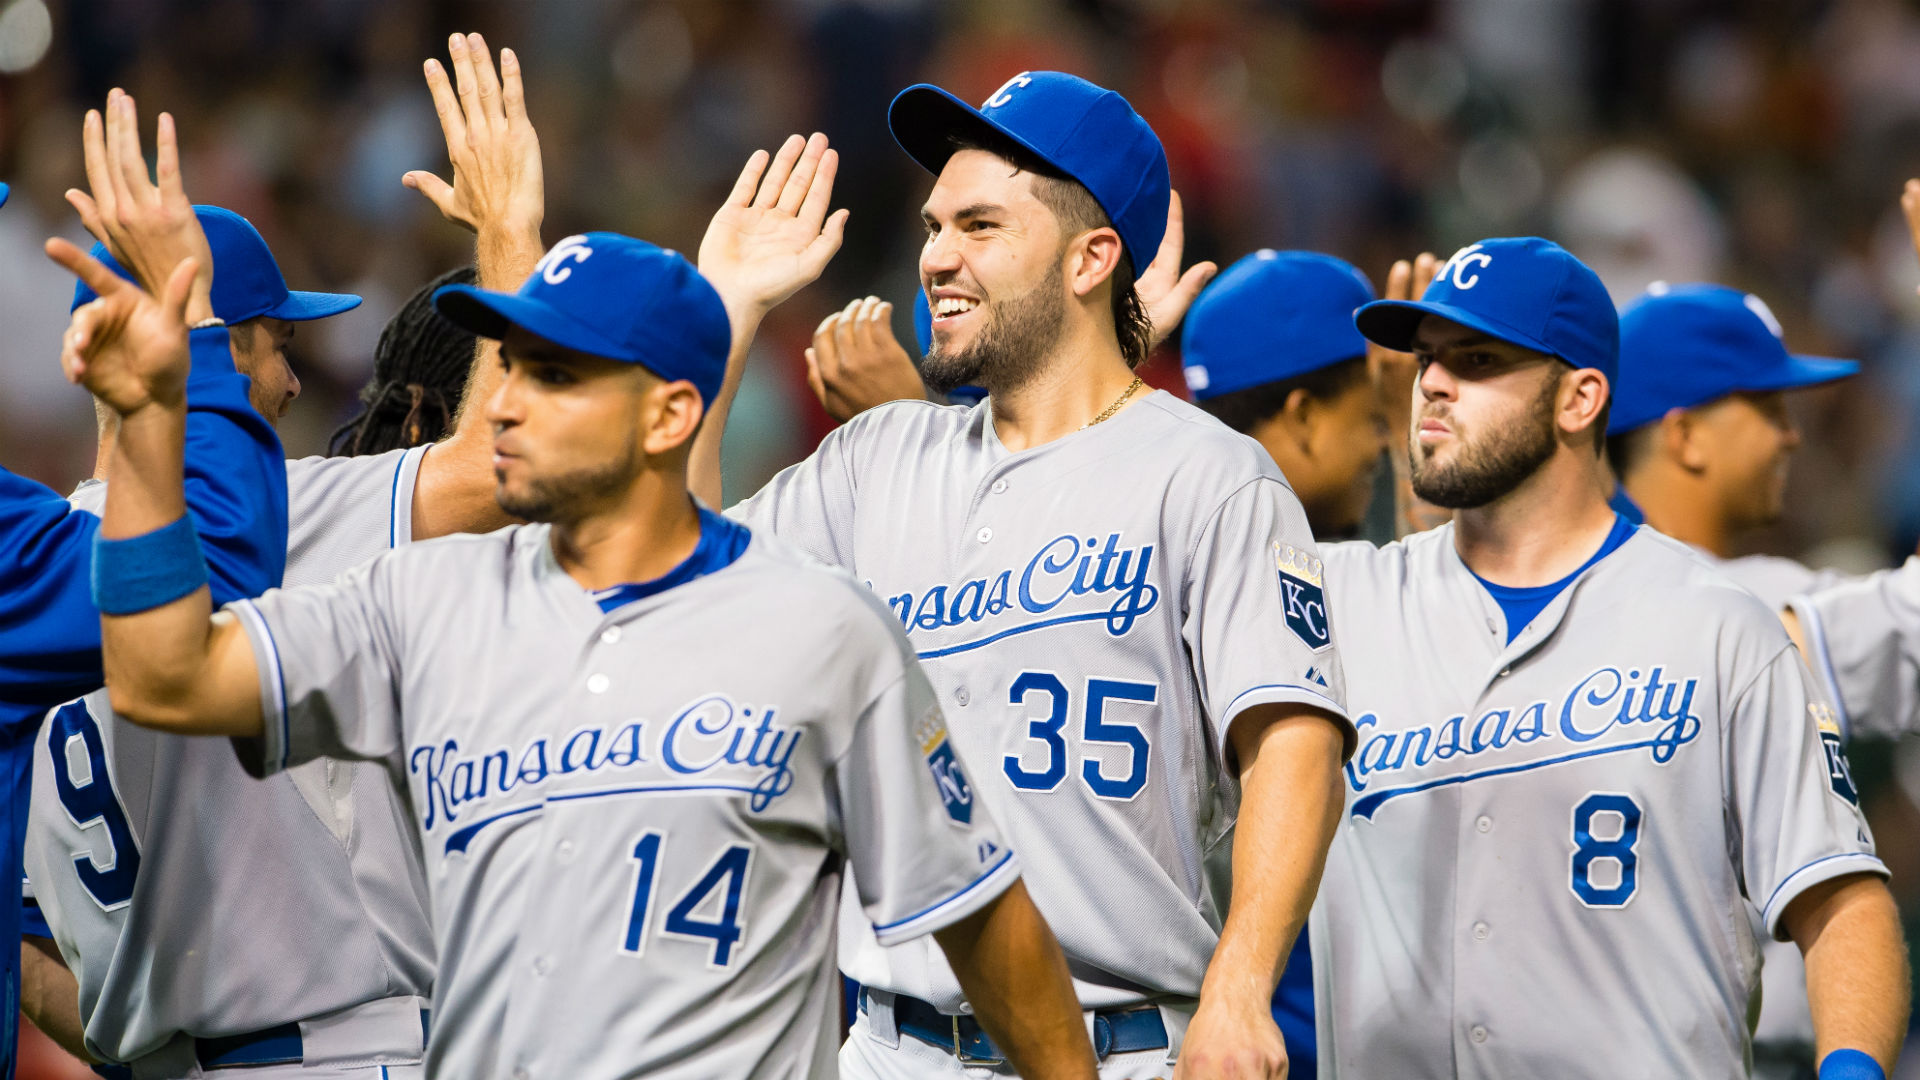 Royals players fine each other for not using 'Trap Queen' references